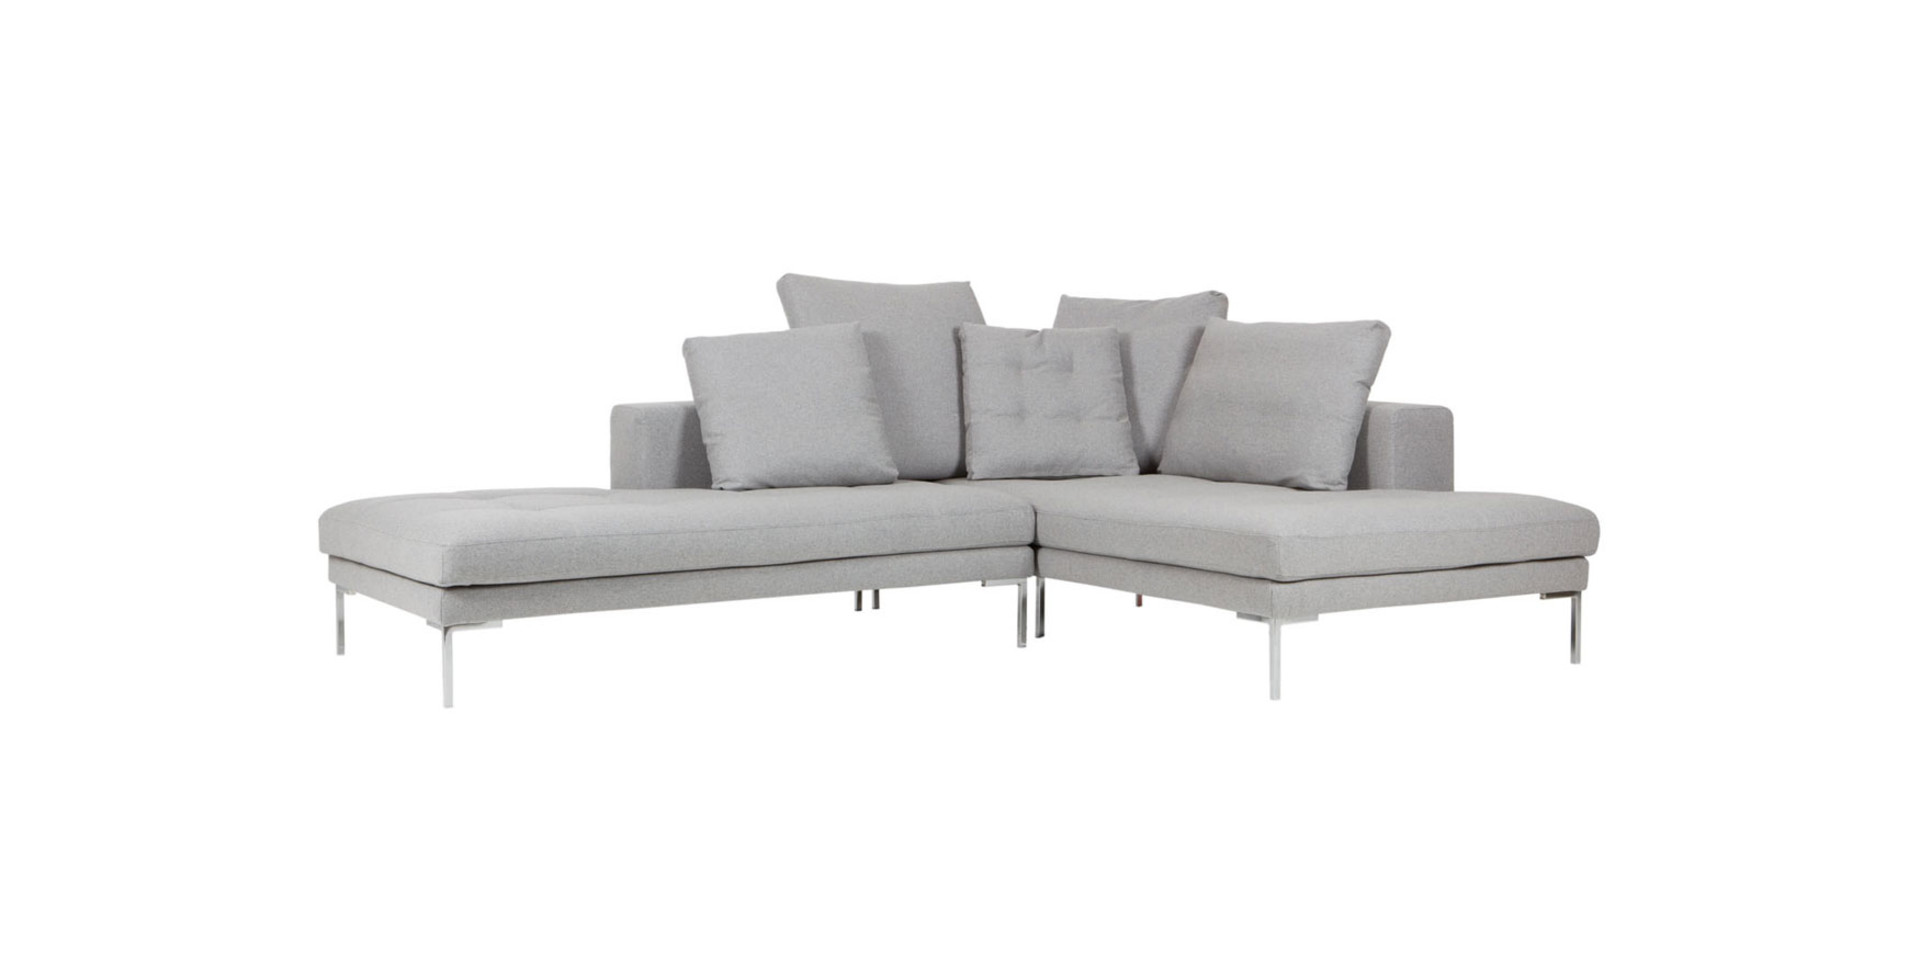 sits-mattias-angle-set5_panno1000_light_grey_2_0